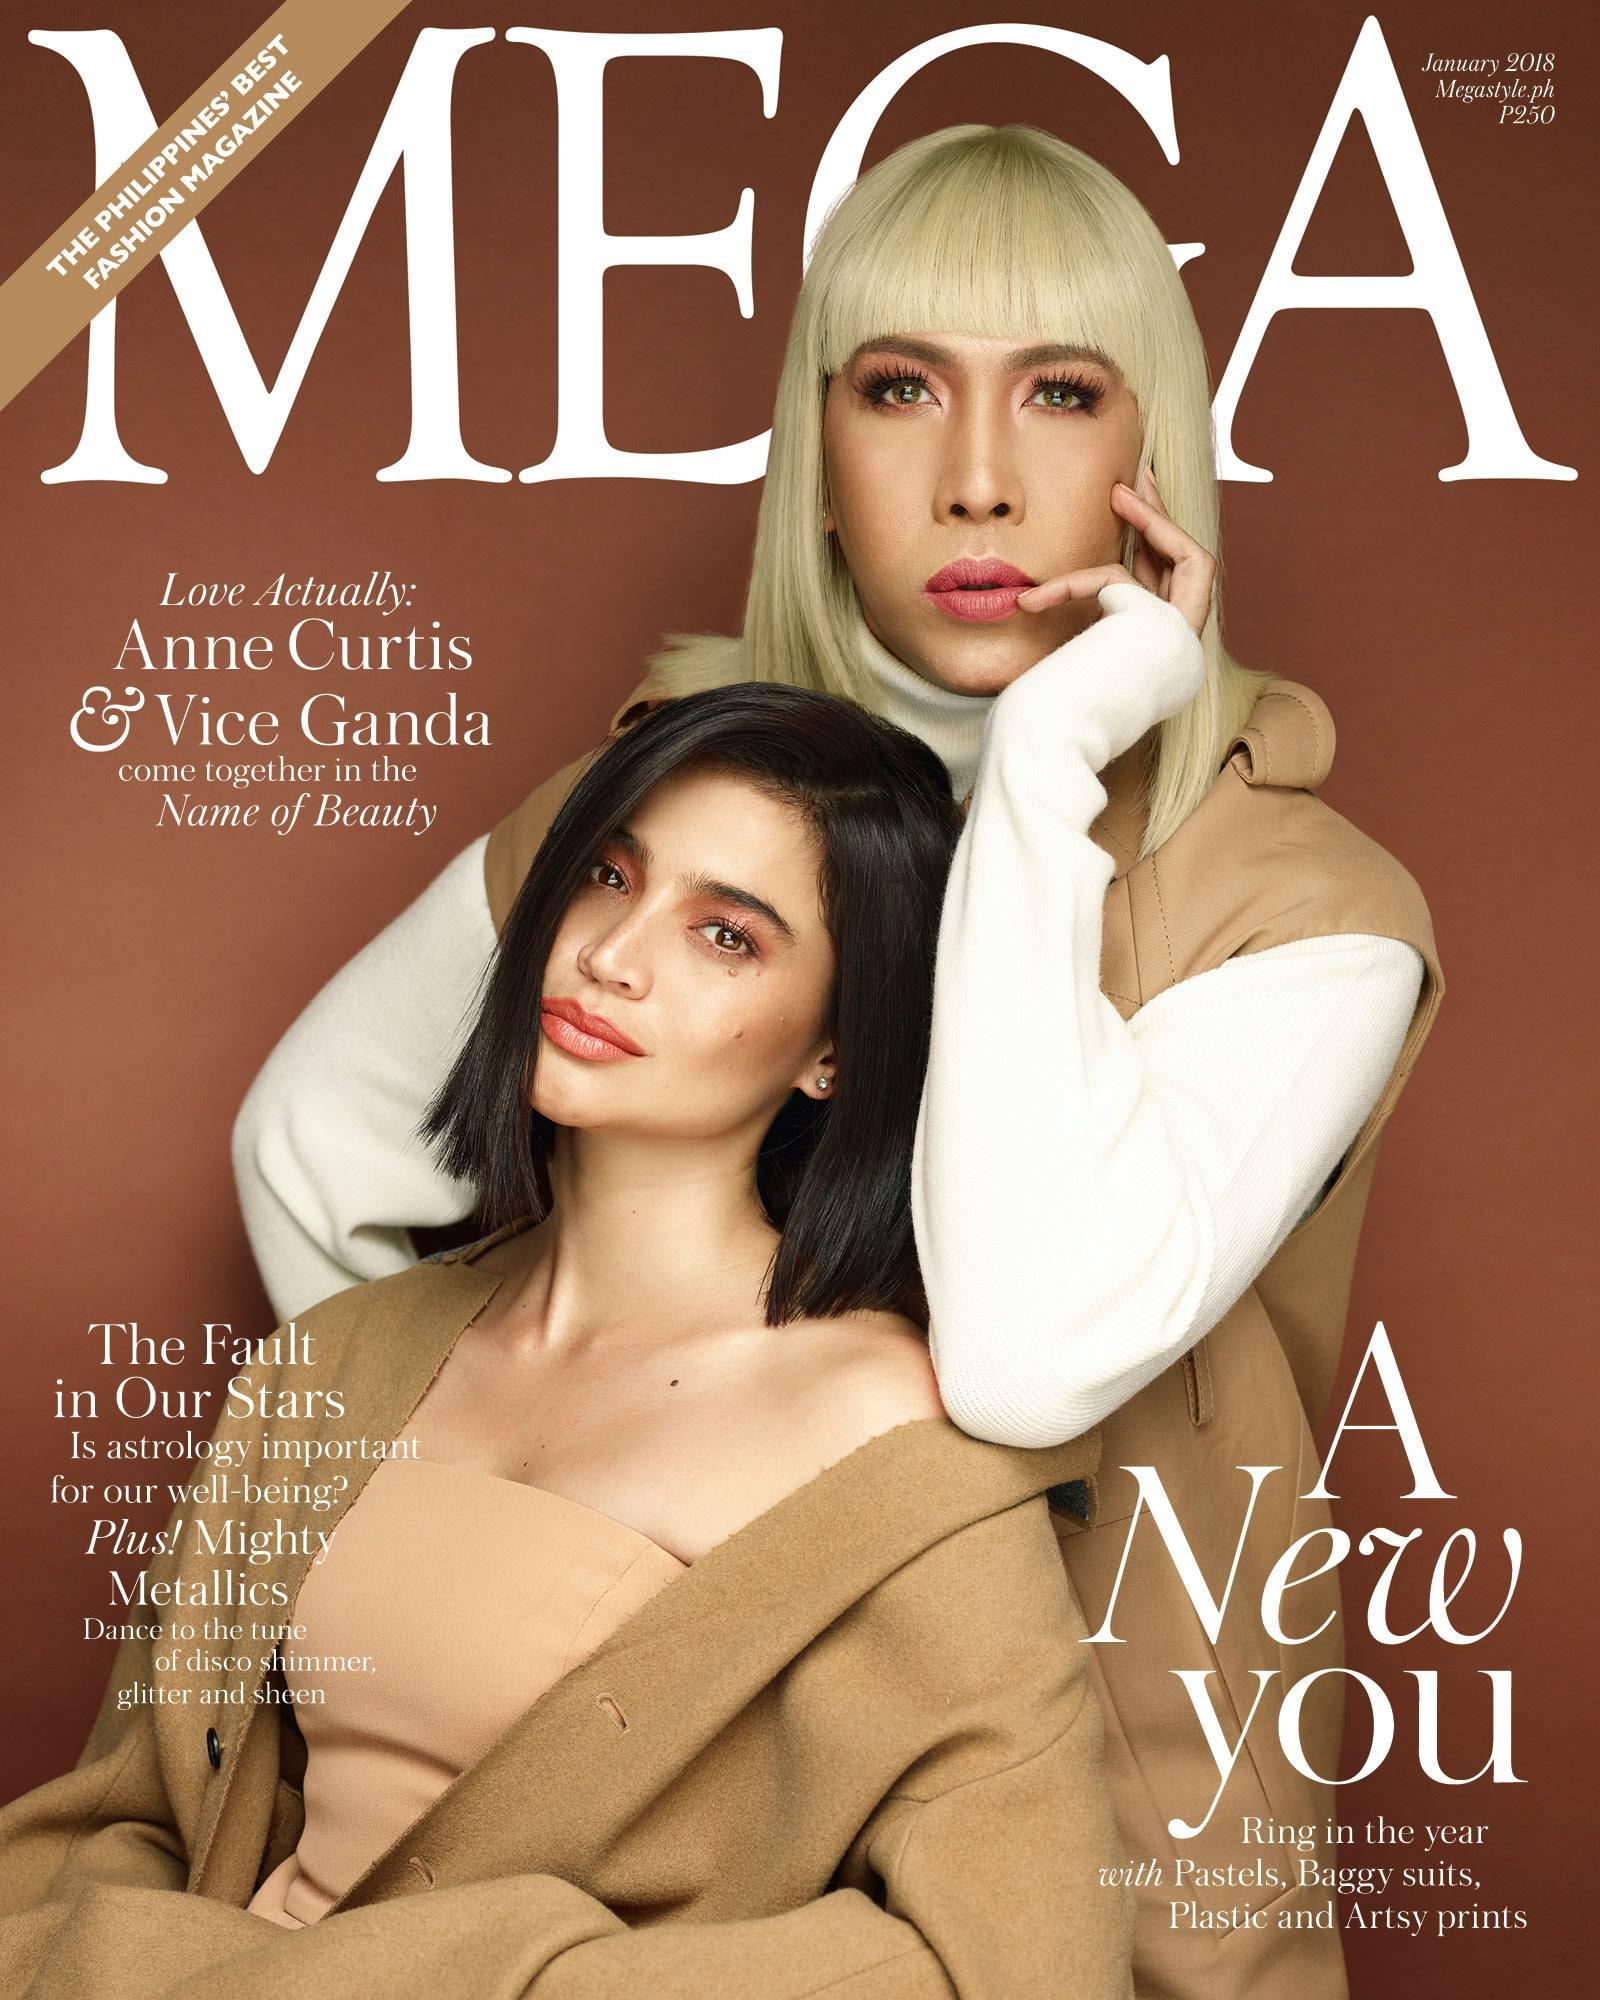 Anne Curtis - Mega Bundle By One Mega Group Inc..